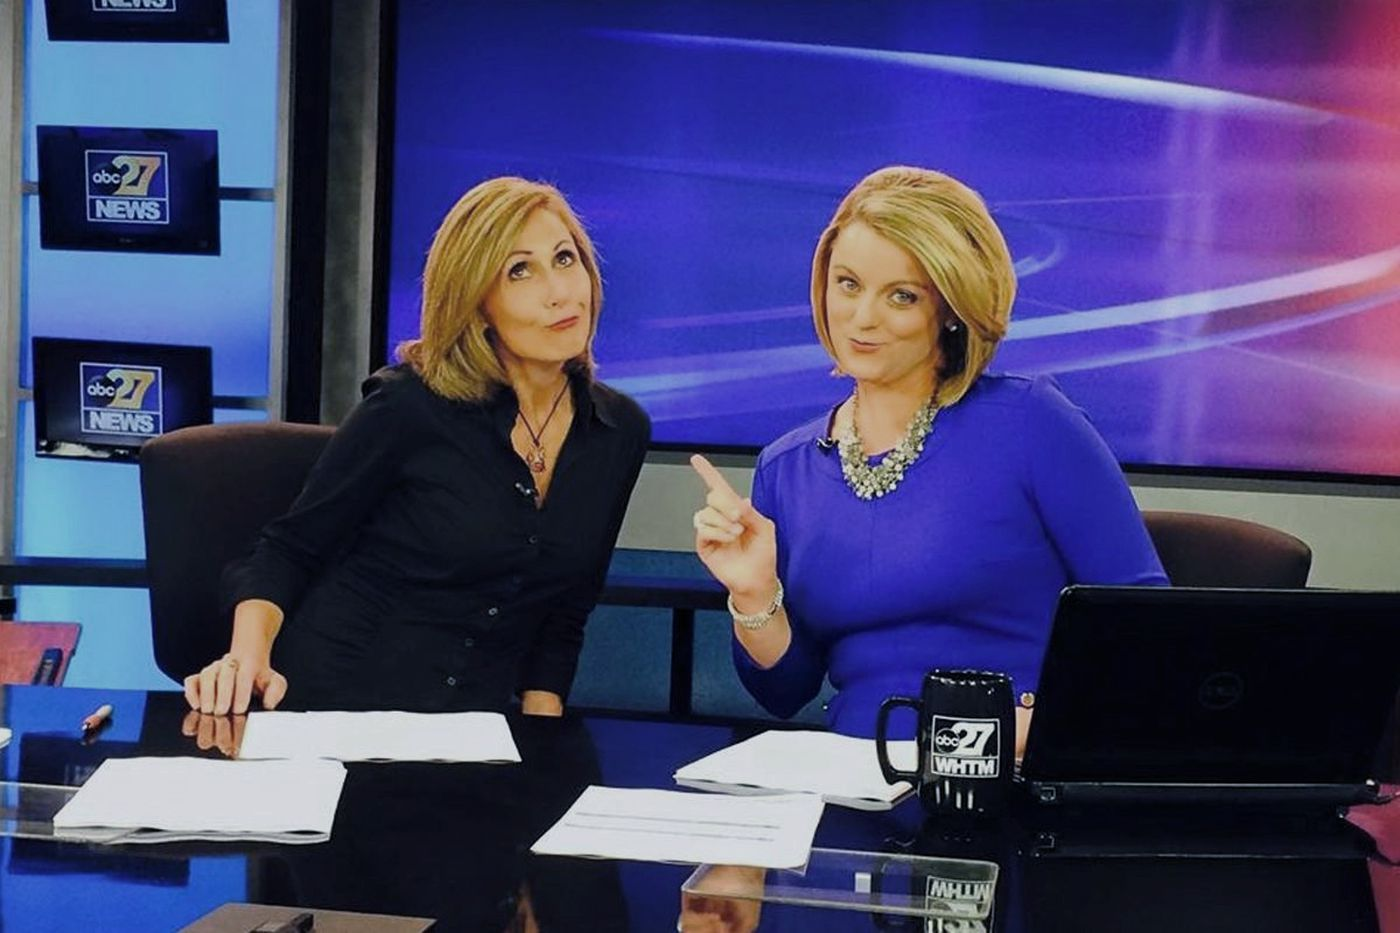 Employees, advertisers flee abc27 in Harrisburg after